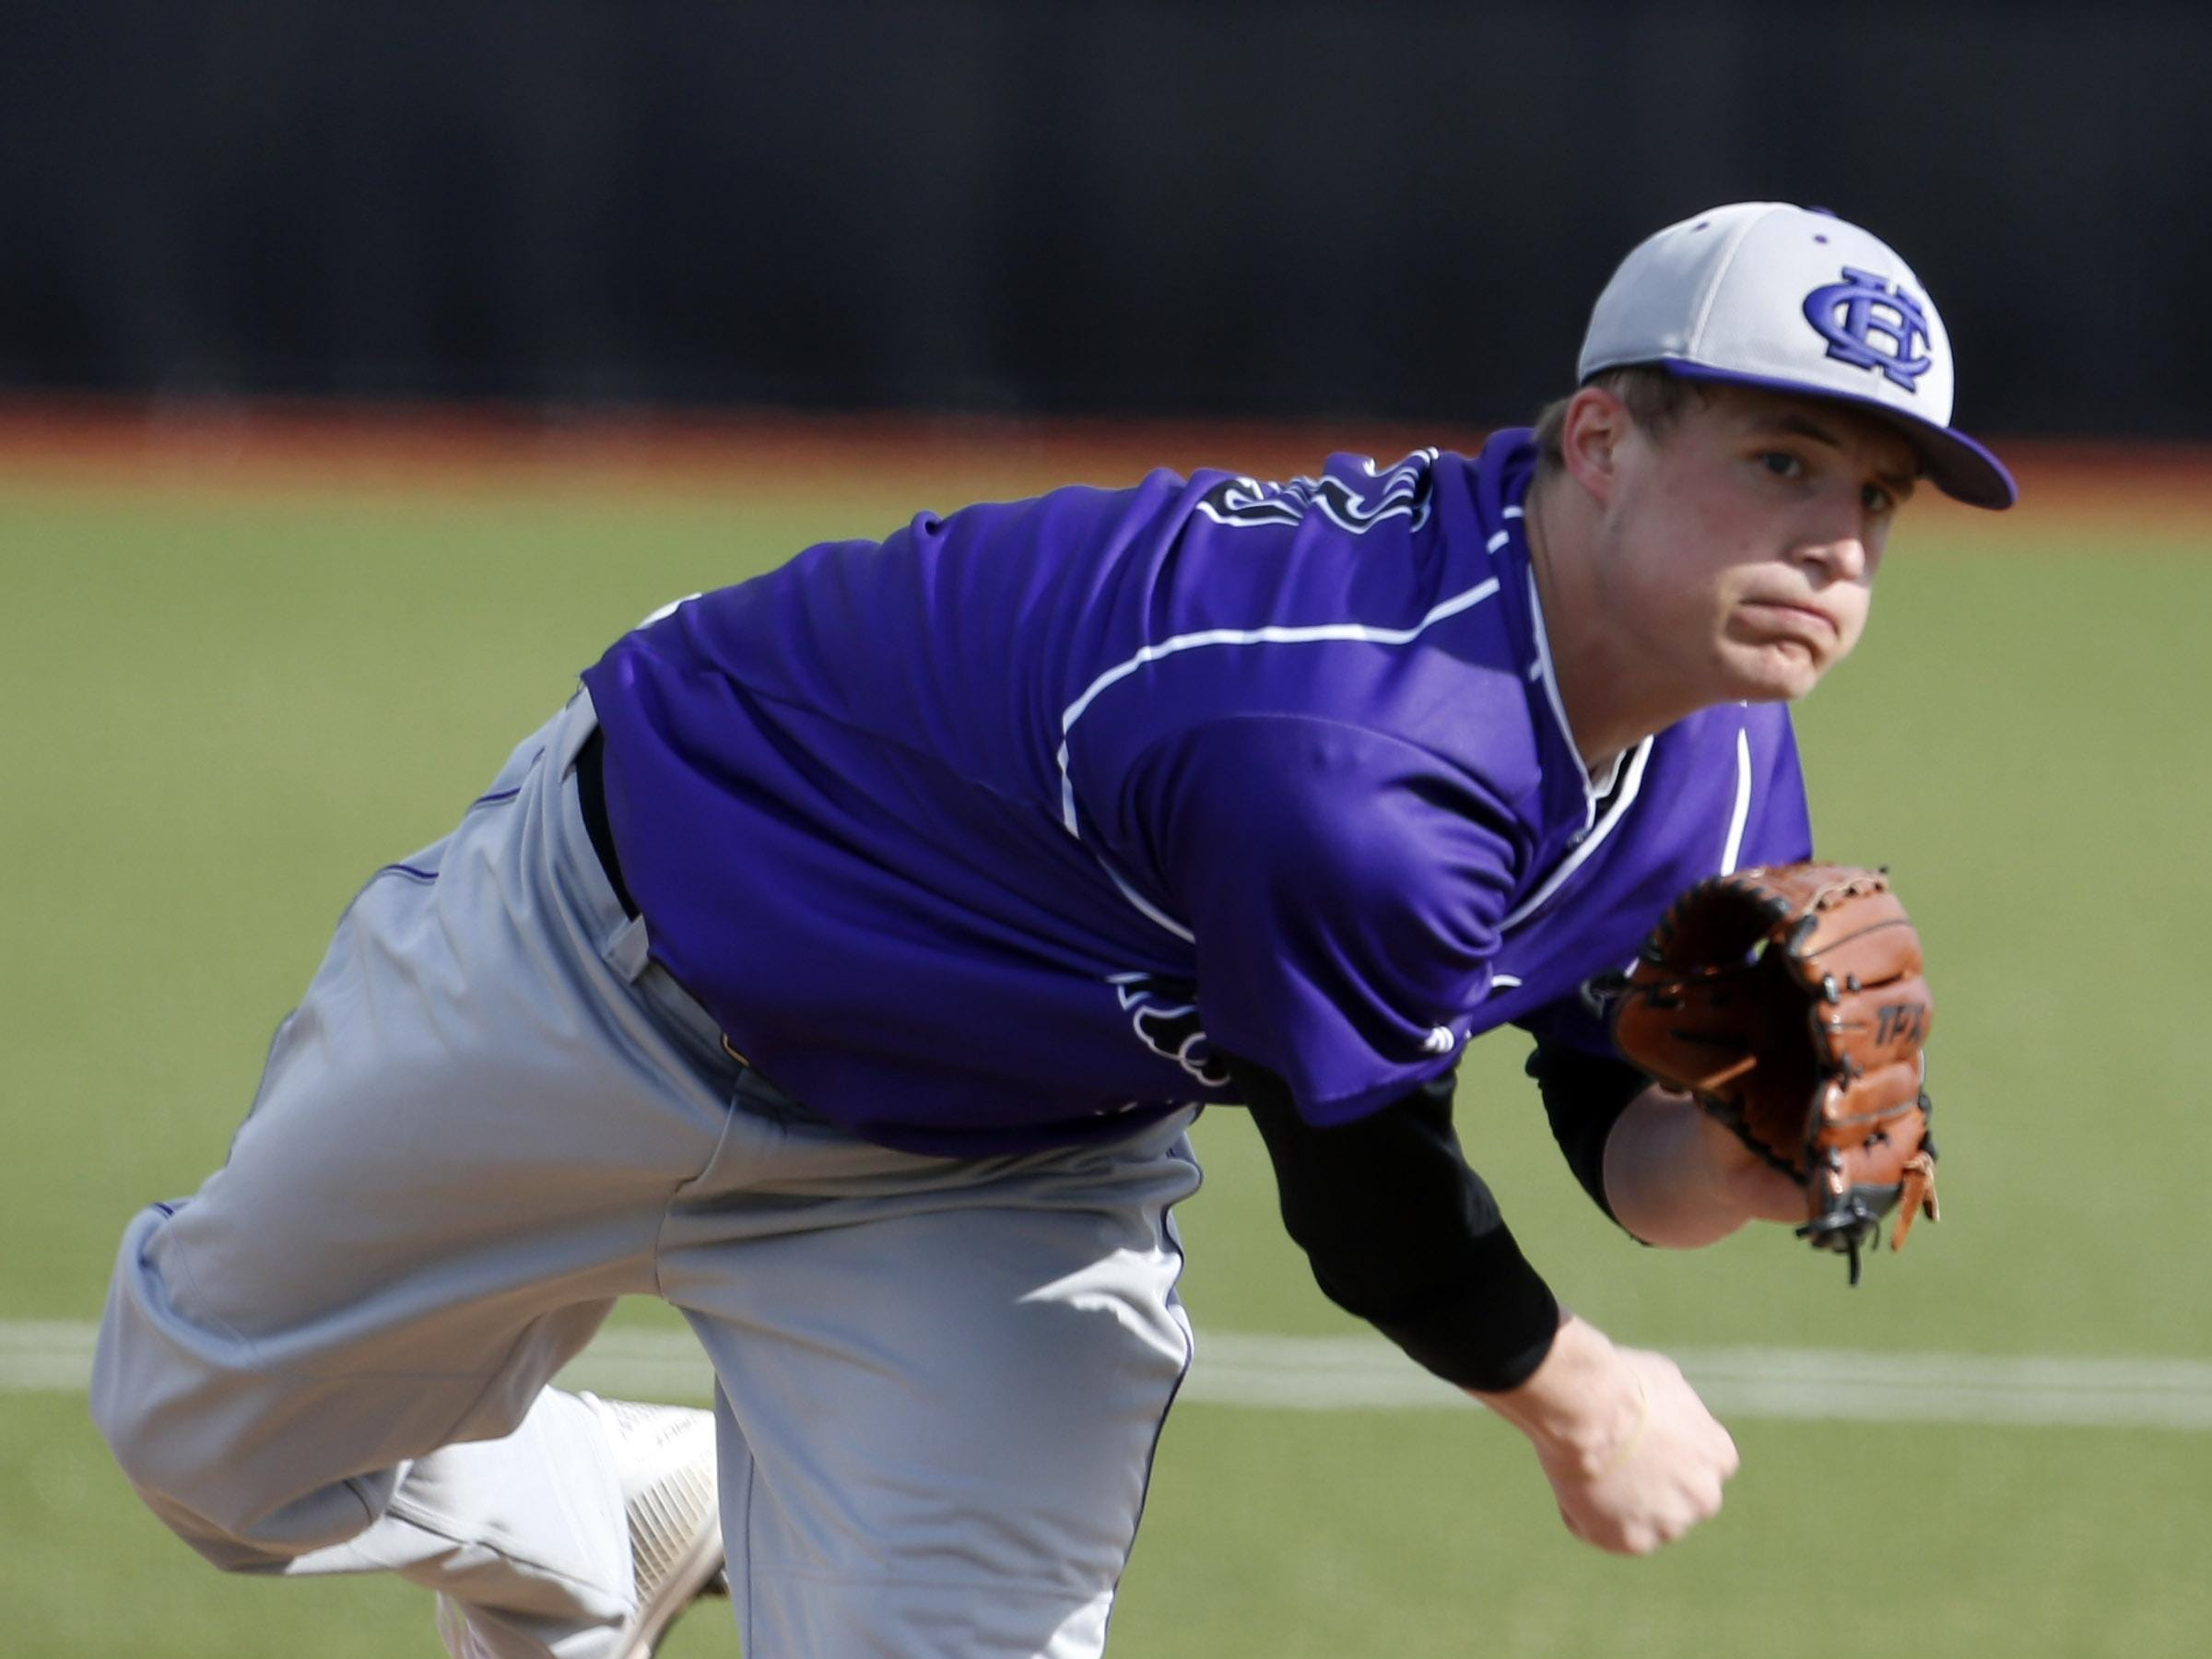 Cameron Varga, shown here during his time at CHCA, is 1-1 with a 2.25 ERA for the Hudson Valley Renegades.